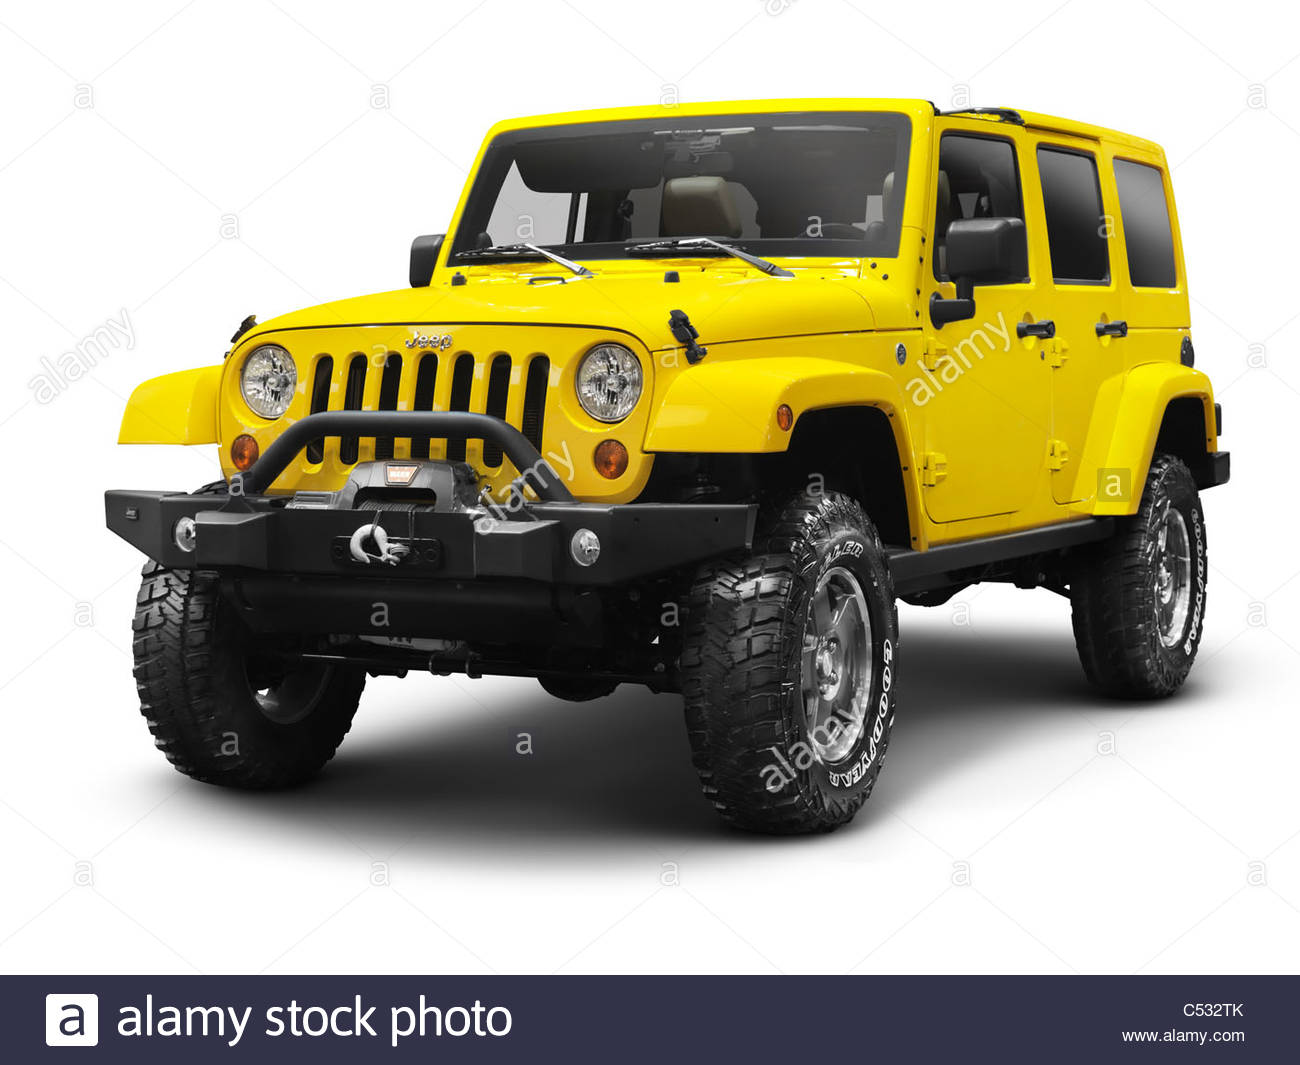 Yellow 2011 Jeep Wrangler Unlimited Sahara 4x4 SUV isolated on 1300x1065